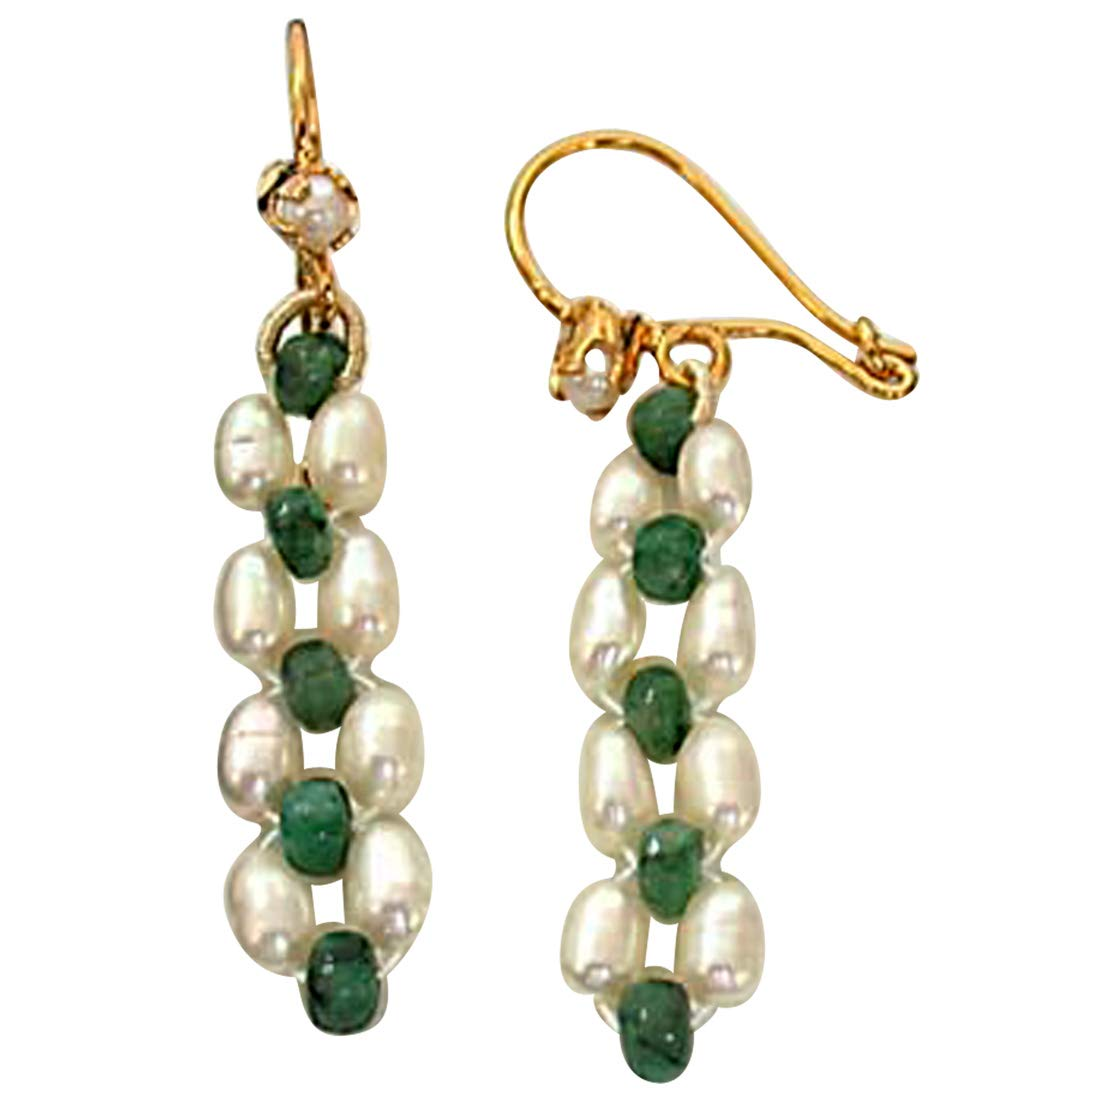 Real Emerald beads & Rice Pearl Hanging Earrings for Women (SE125)